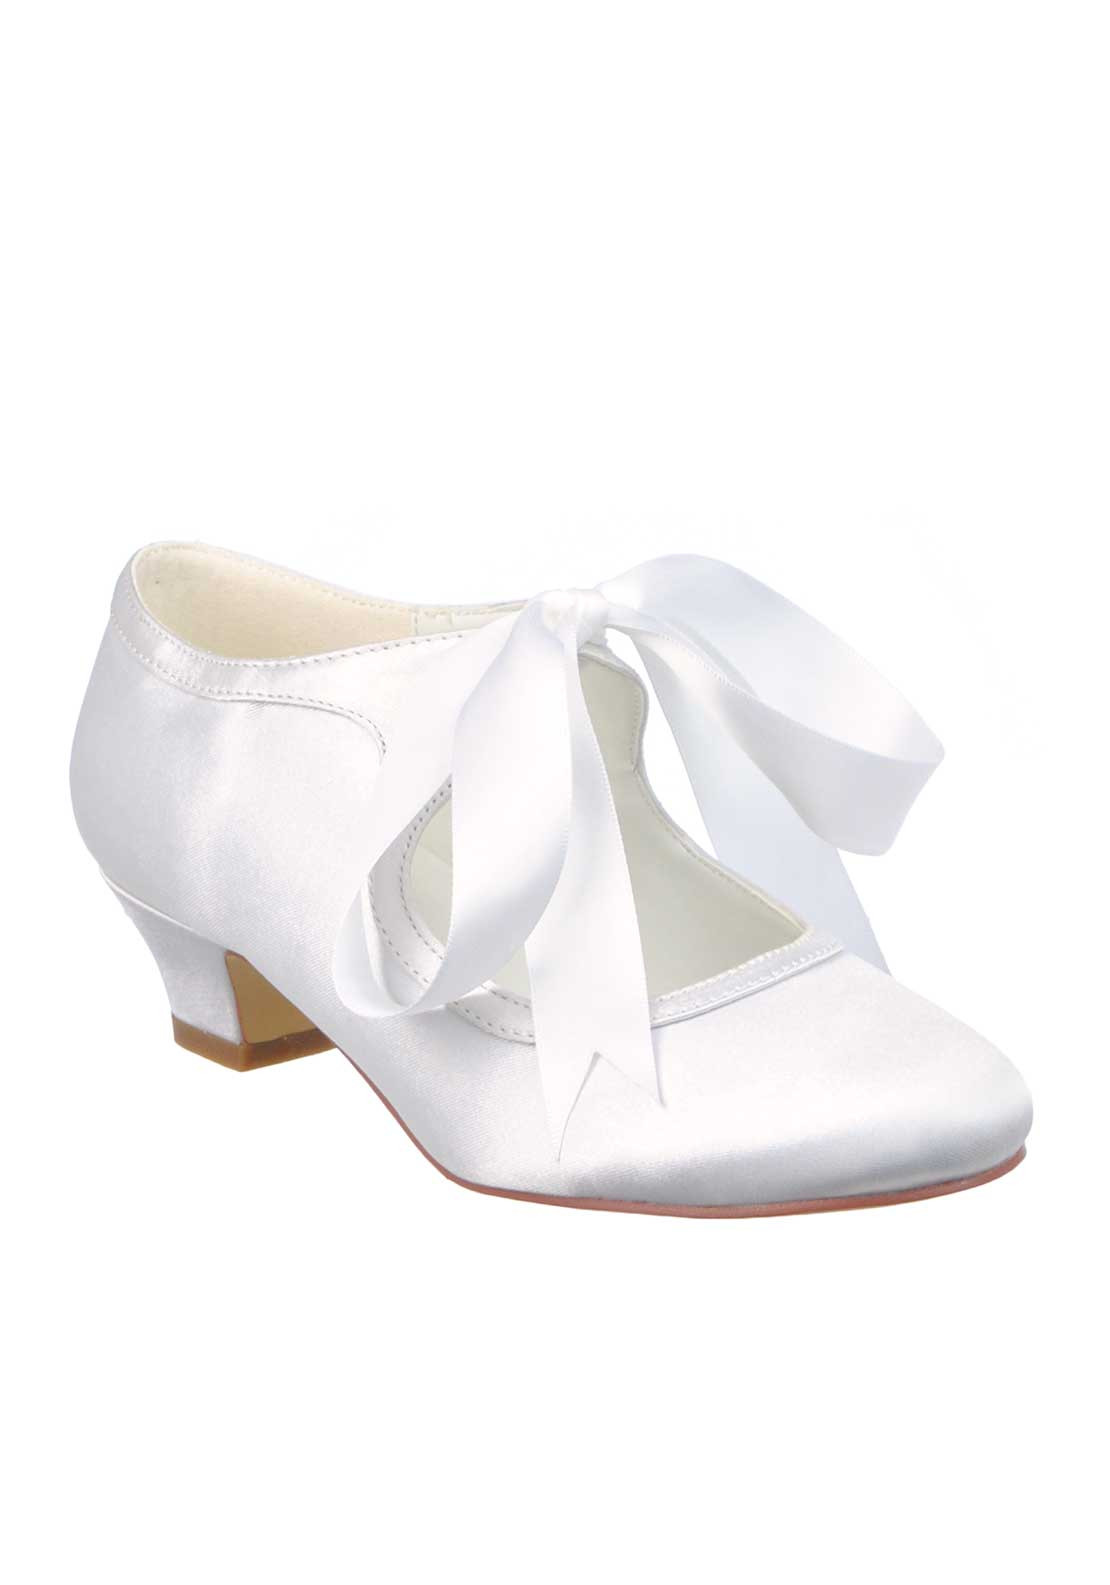 Little People Girls Bow Satin Communion Shoes White